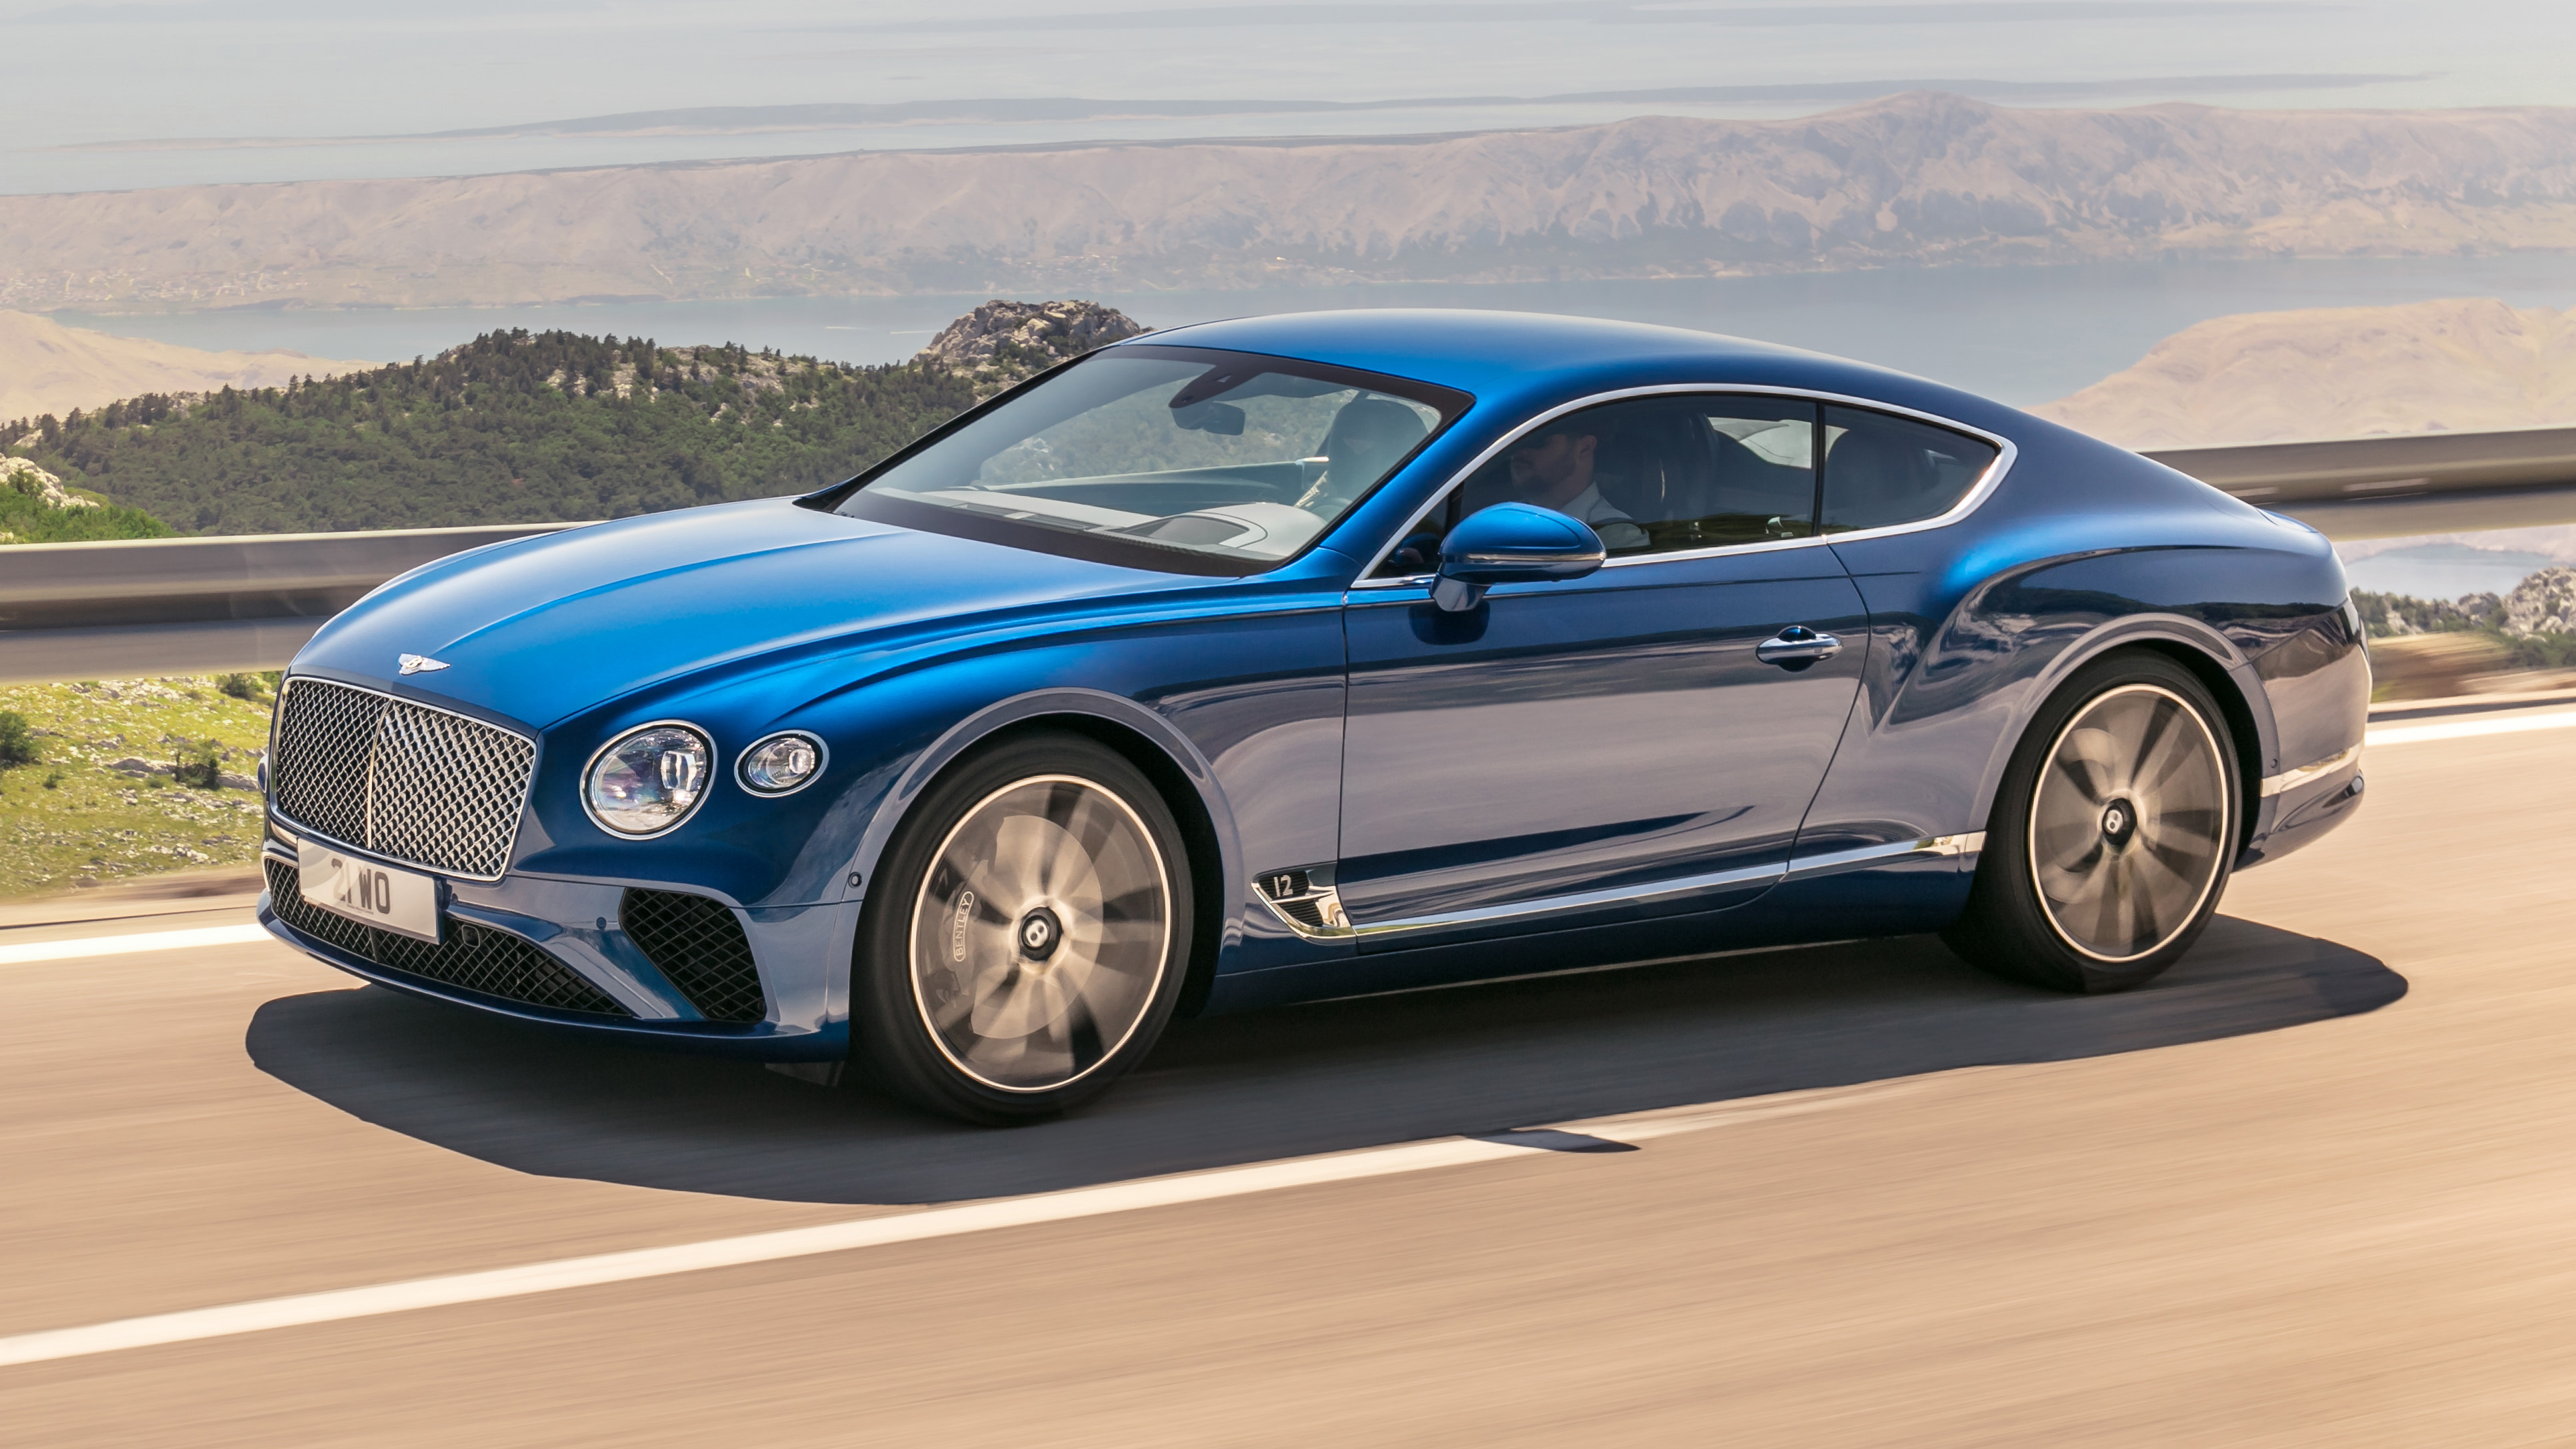 faster a convertible speed made how gt coupe edition even british top does much bentley car prevnext has cost news the gear continental black